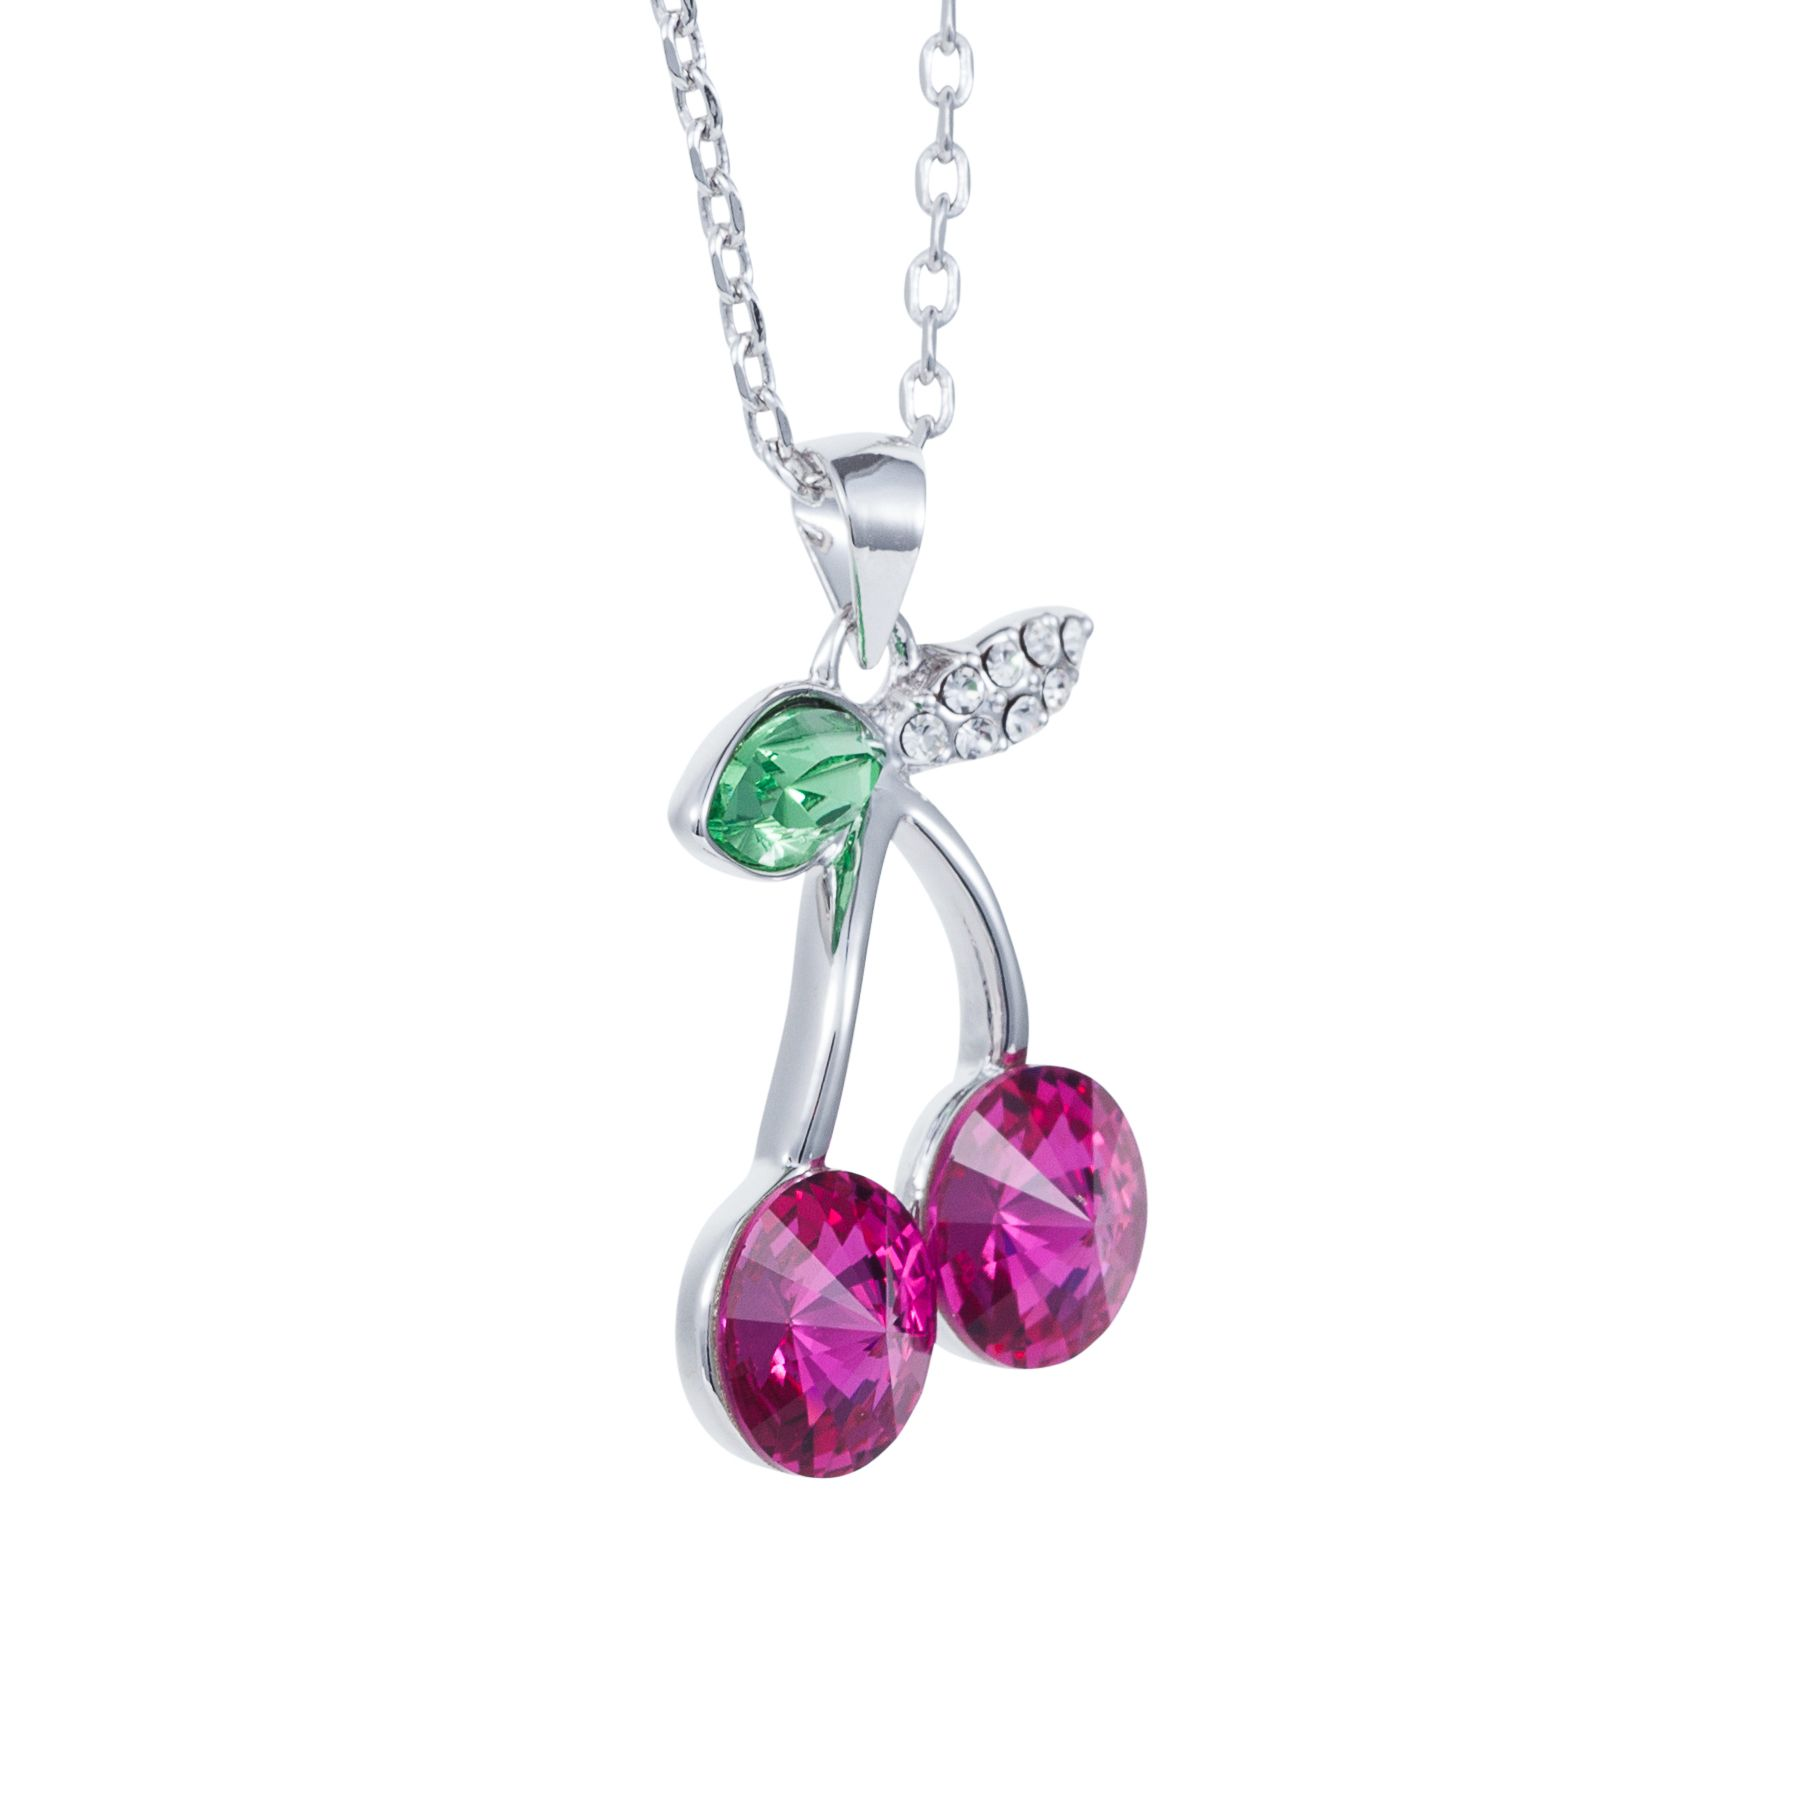 Hanging cherry pendant